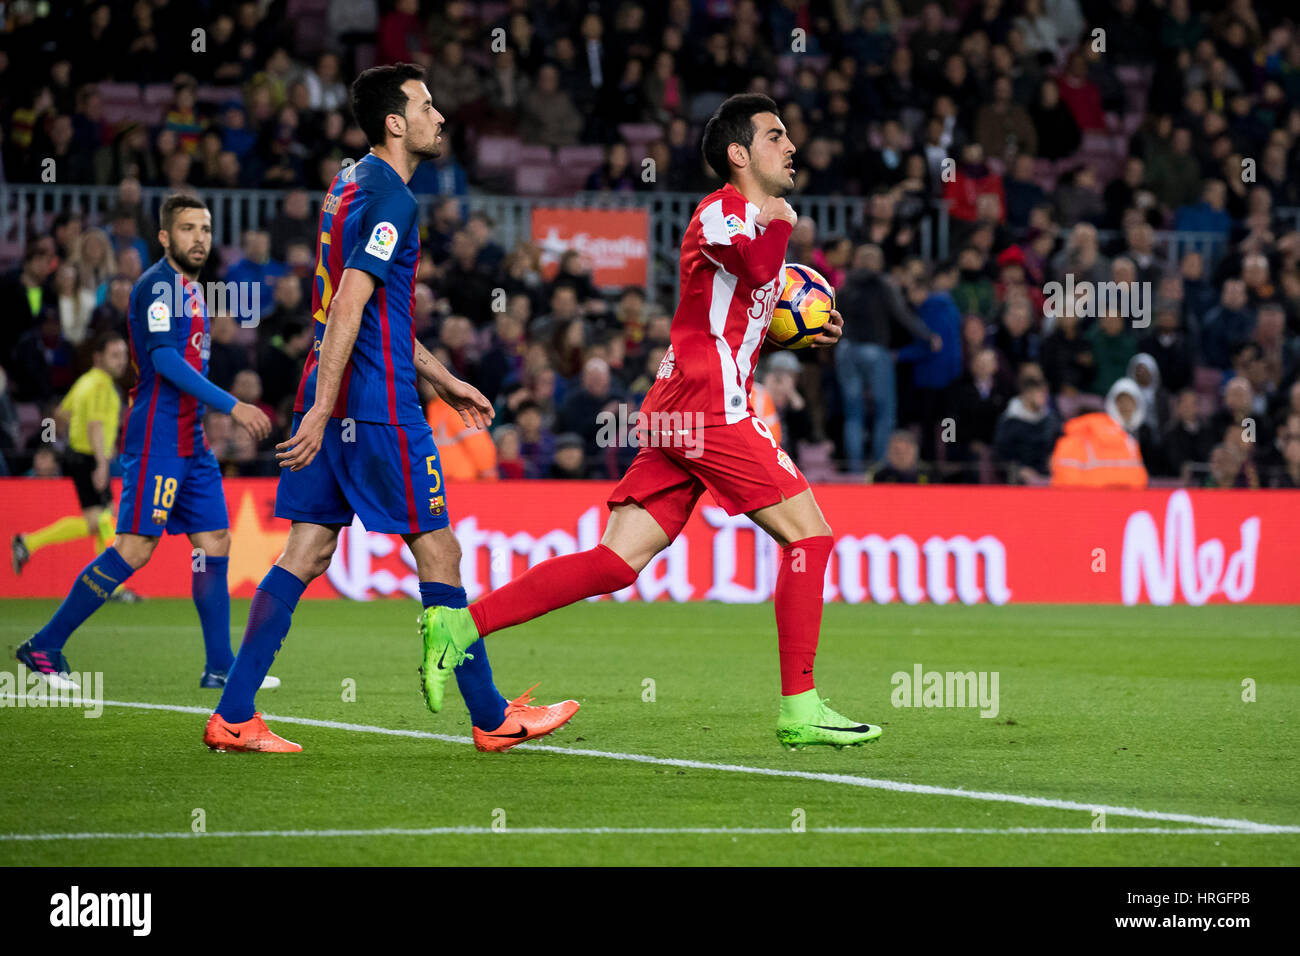 Camp Not Stadium, Barcelona, Spain. 1st March, 2017. C. Castro scored at Camp Nou Stadium, Barcelona, Spain. Credit: - Stock Image